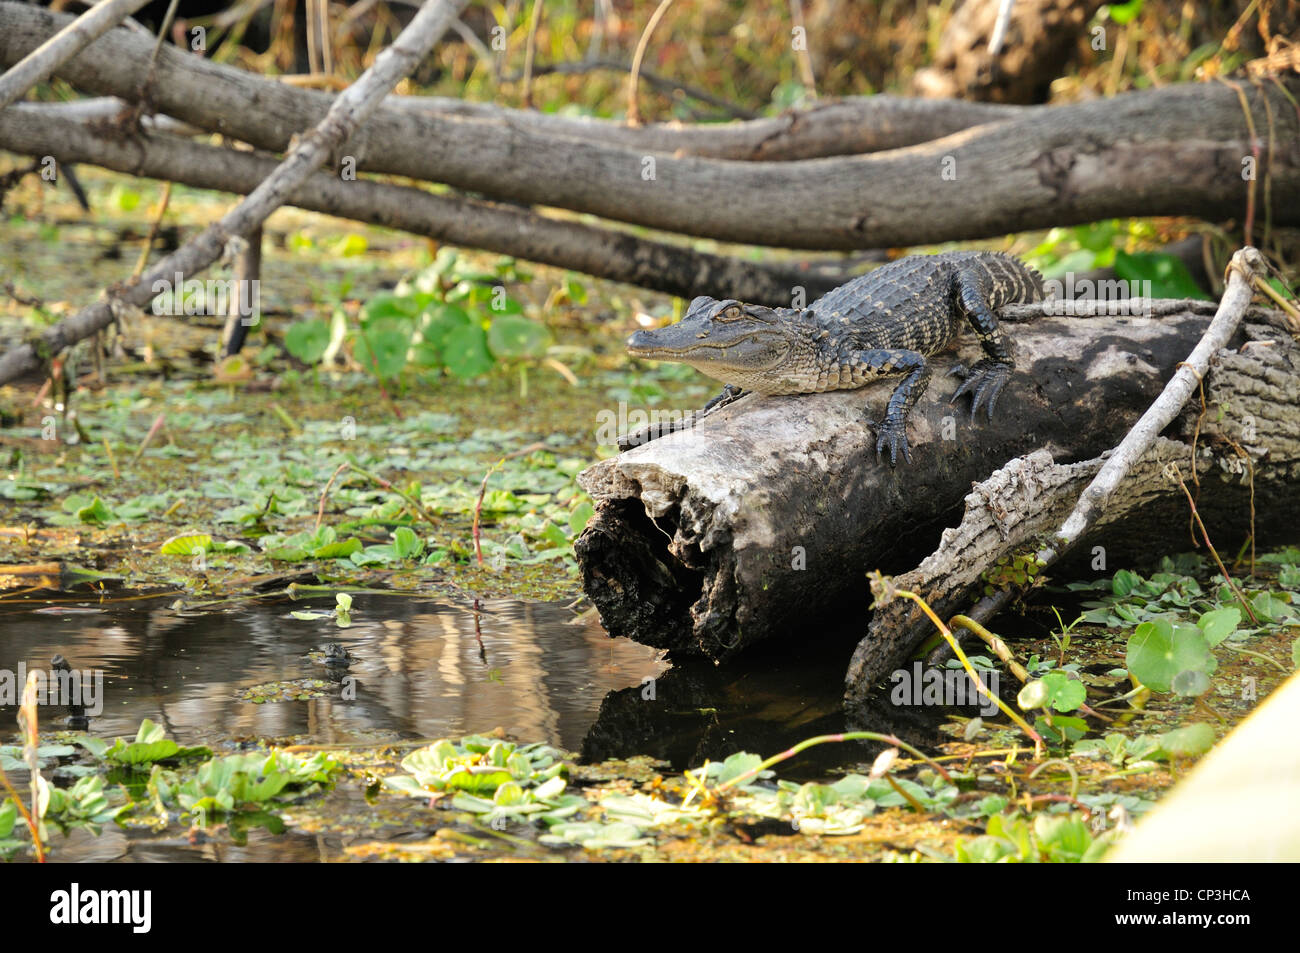 Young alligator on a log Stock Photo